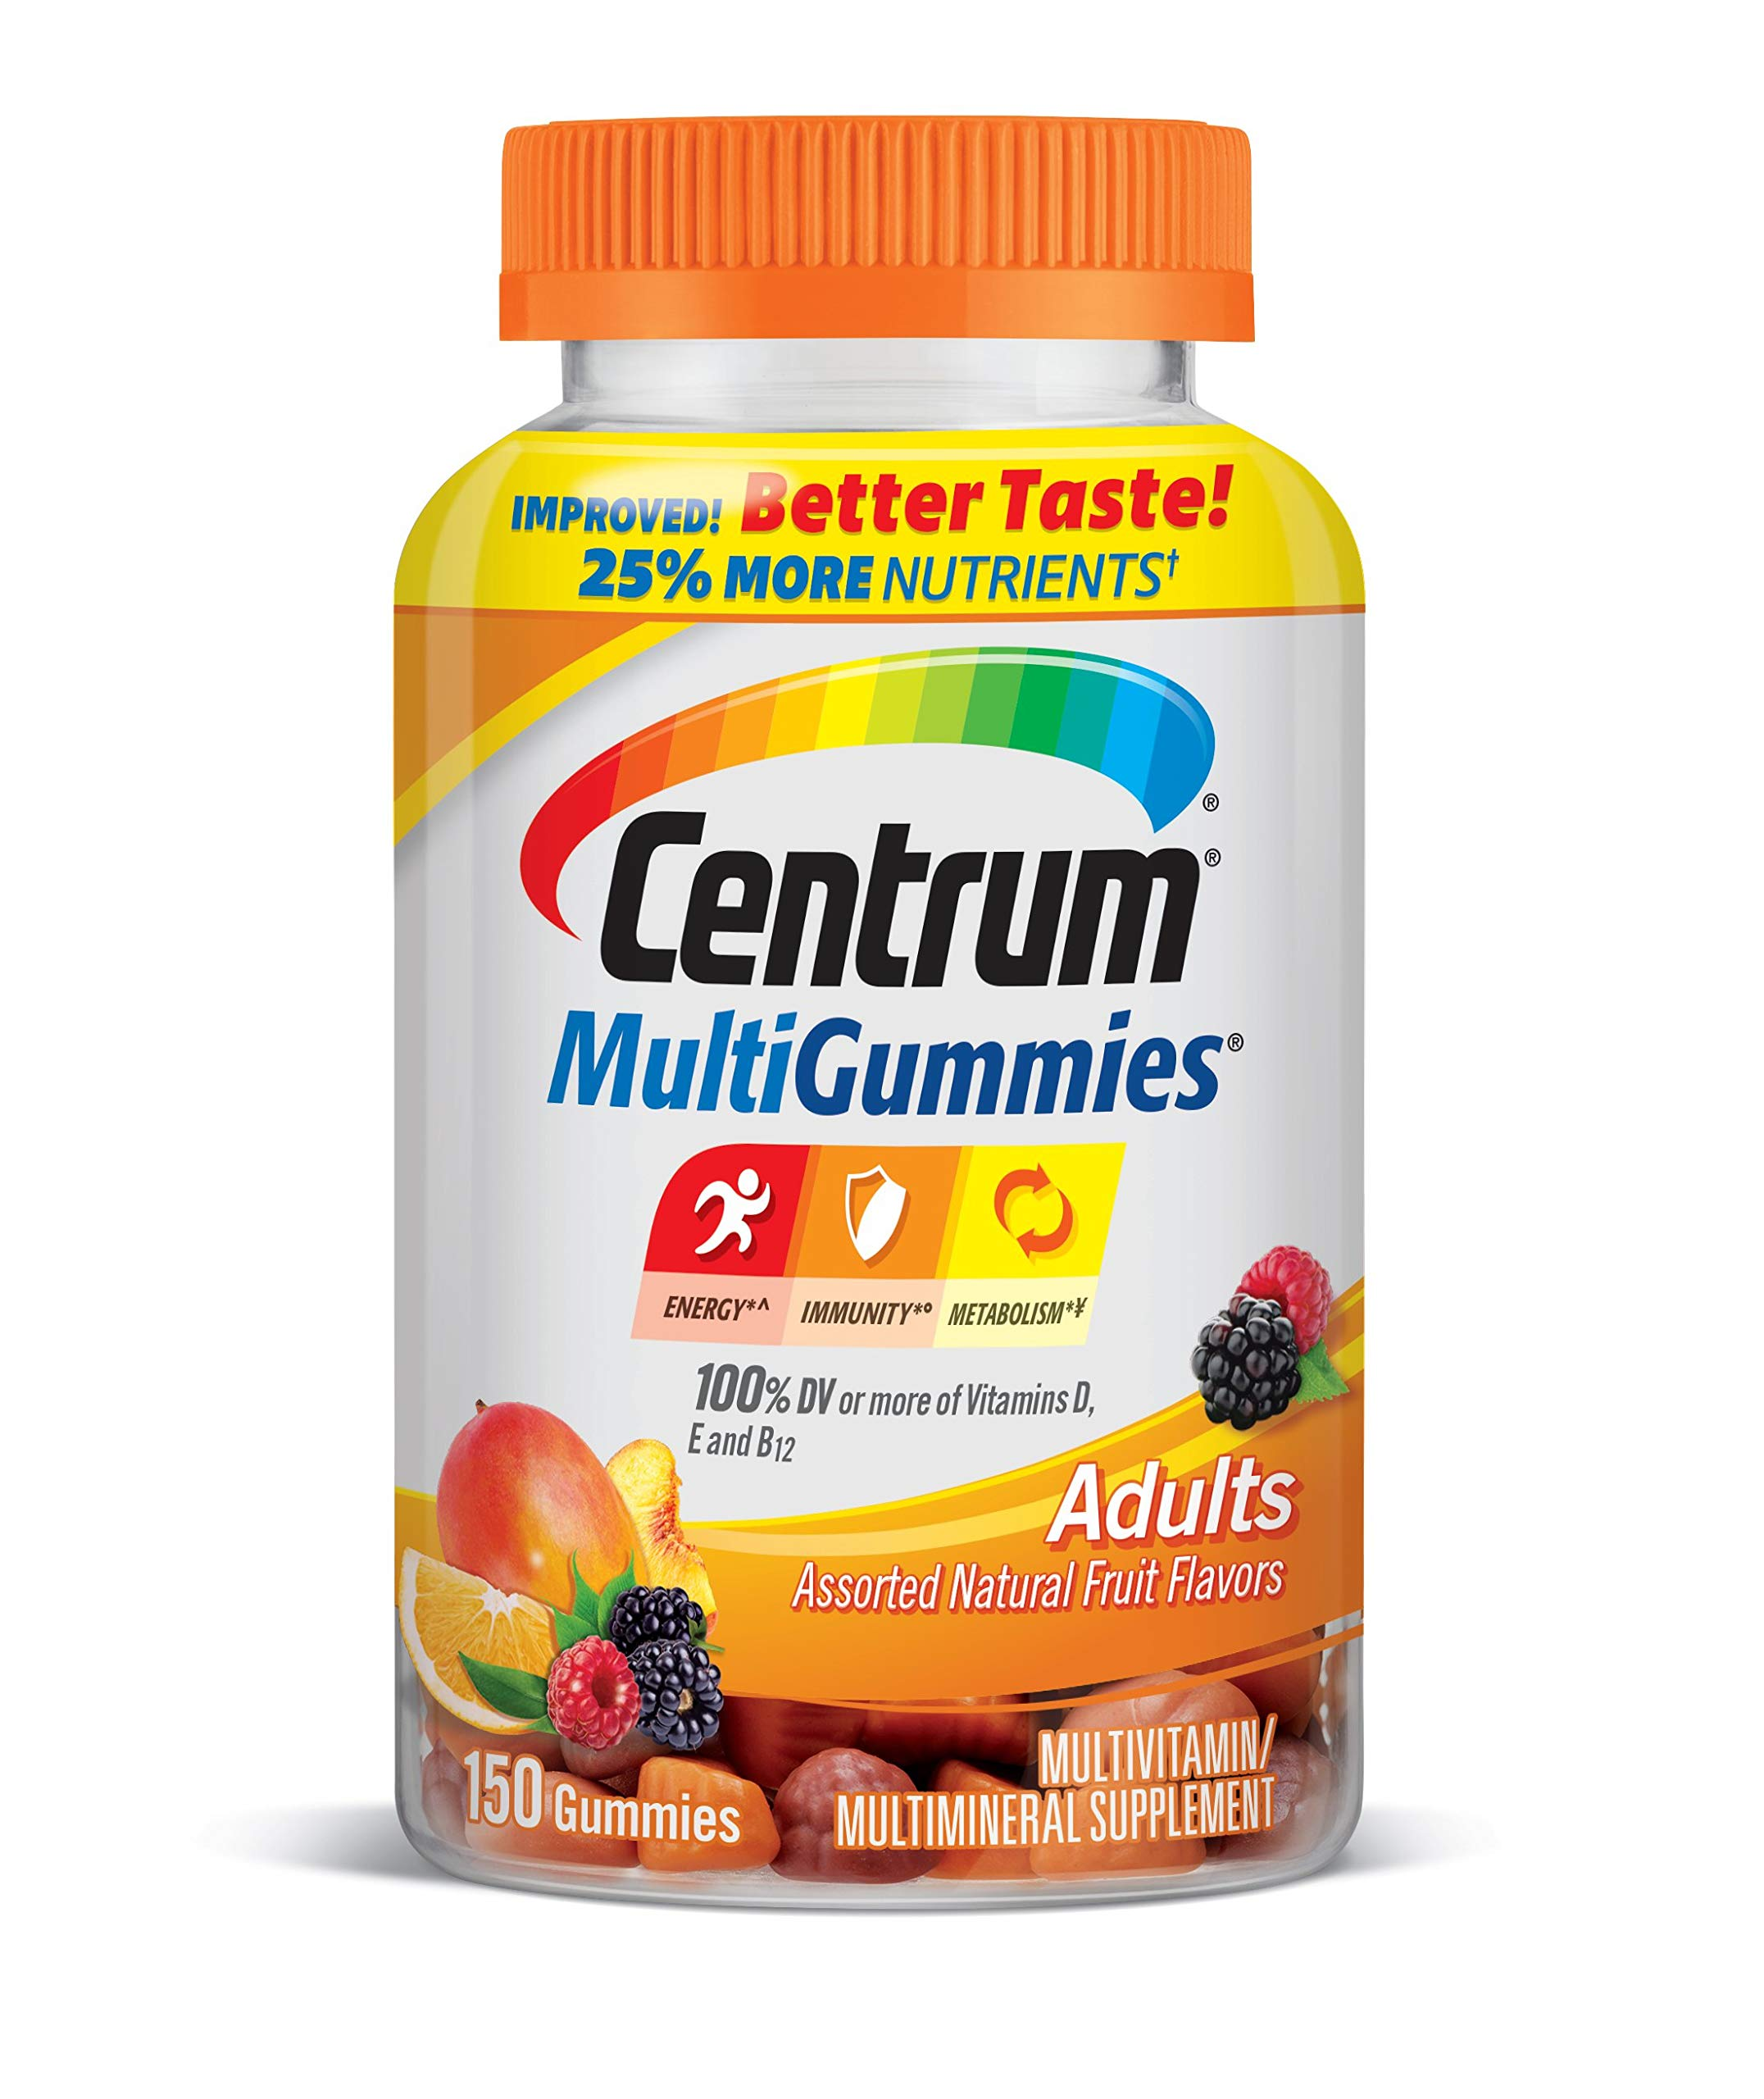 Centrum MultiGummies Gummy Multivitamin for Adults, with Vitamins D, B and E, Assorted Flavor, Fruit, 150 Count